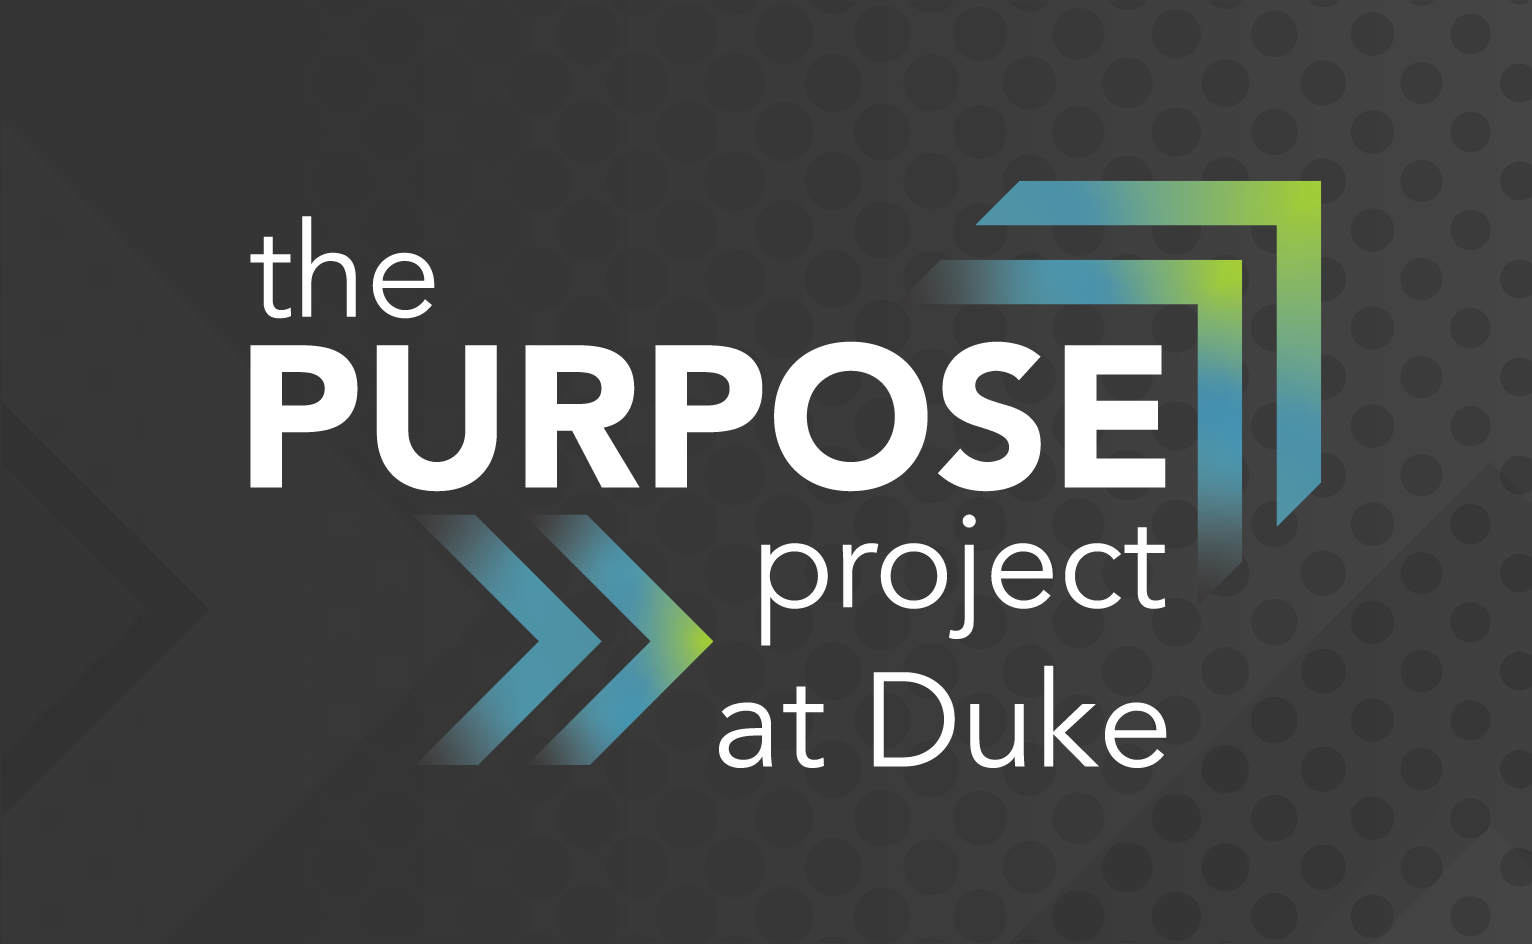 Decorative tile for the The Purpose Project at Duke